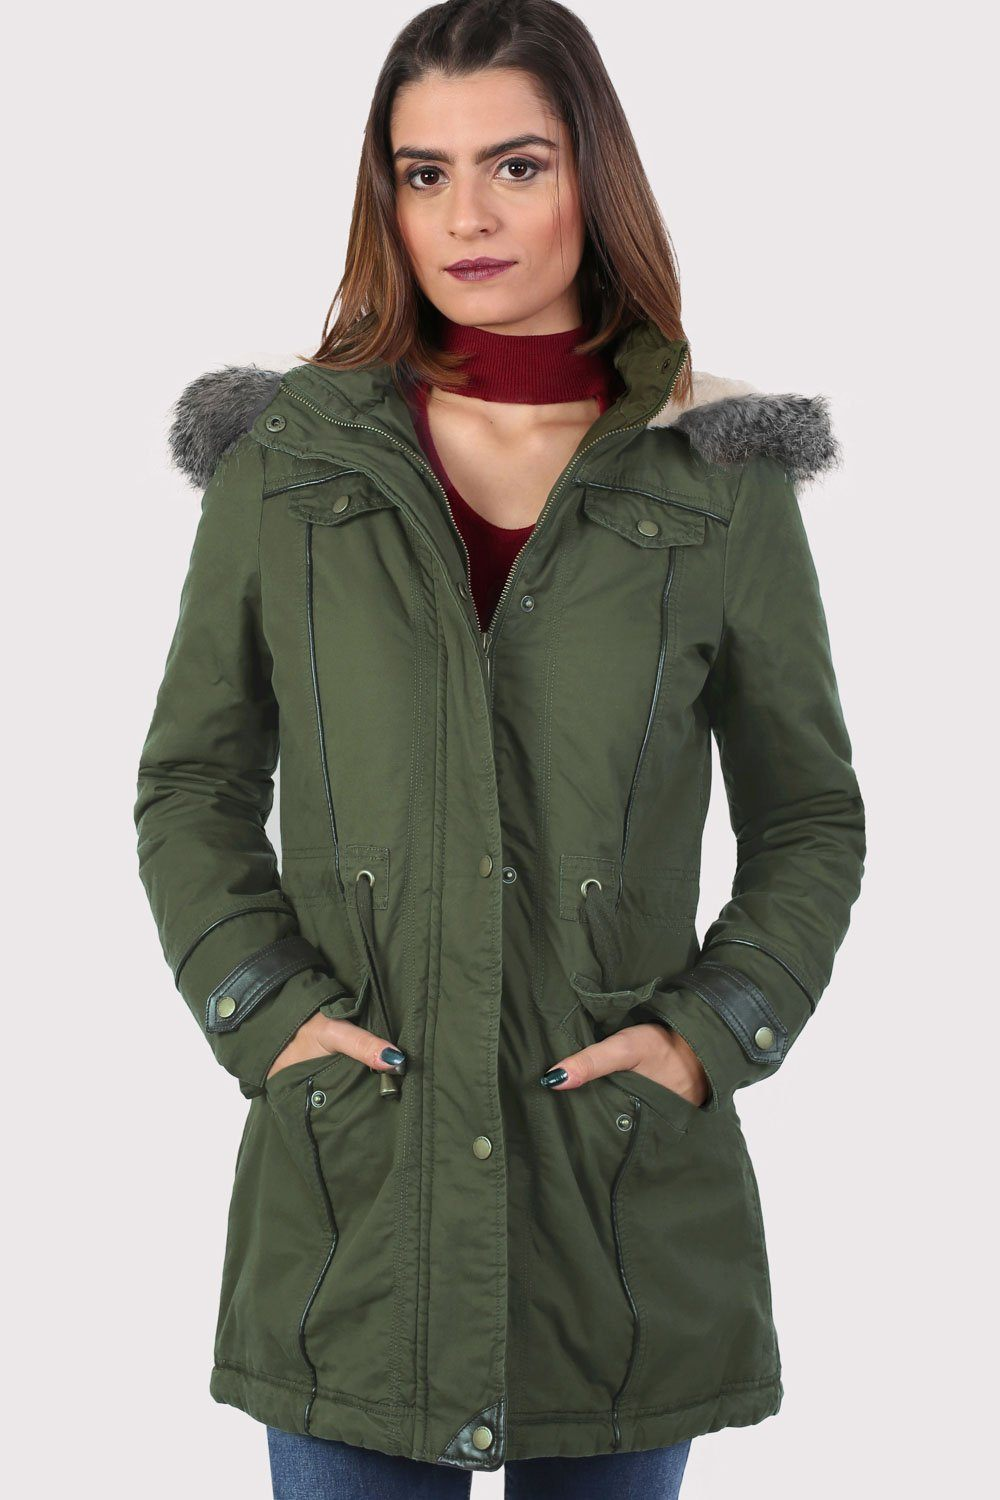 PU Trim Faux Fur Trim Hood Parka Coat in Khaki Green 0